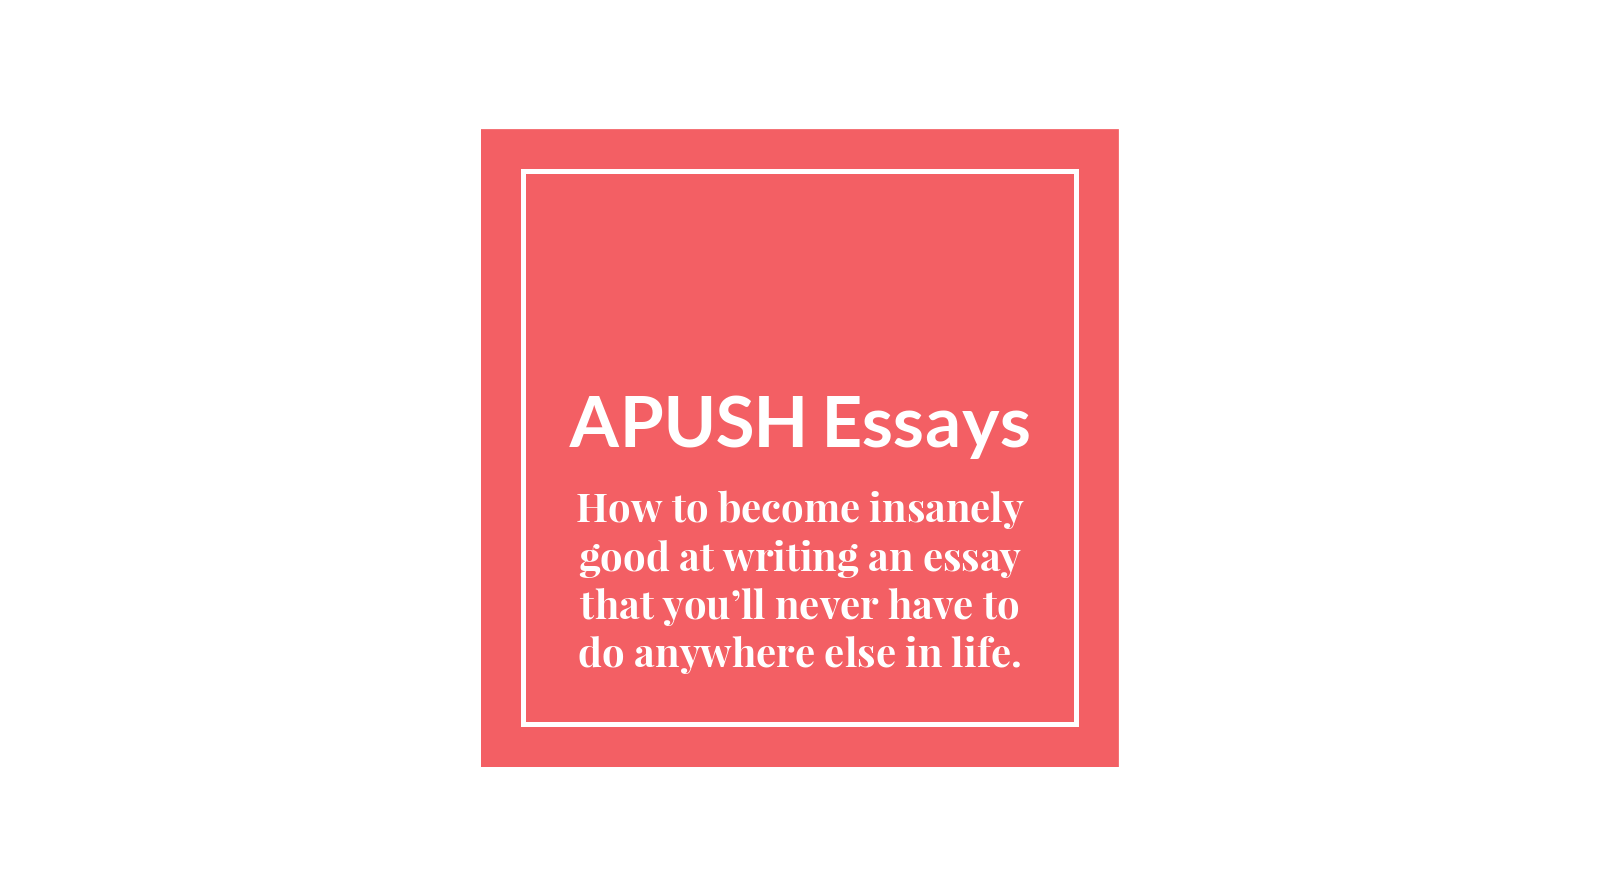 200 word essay contest